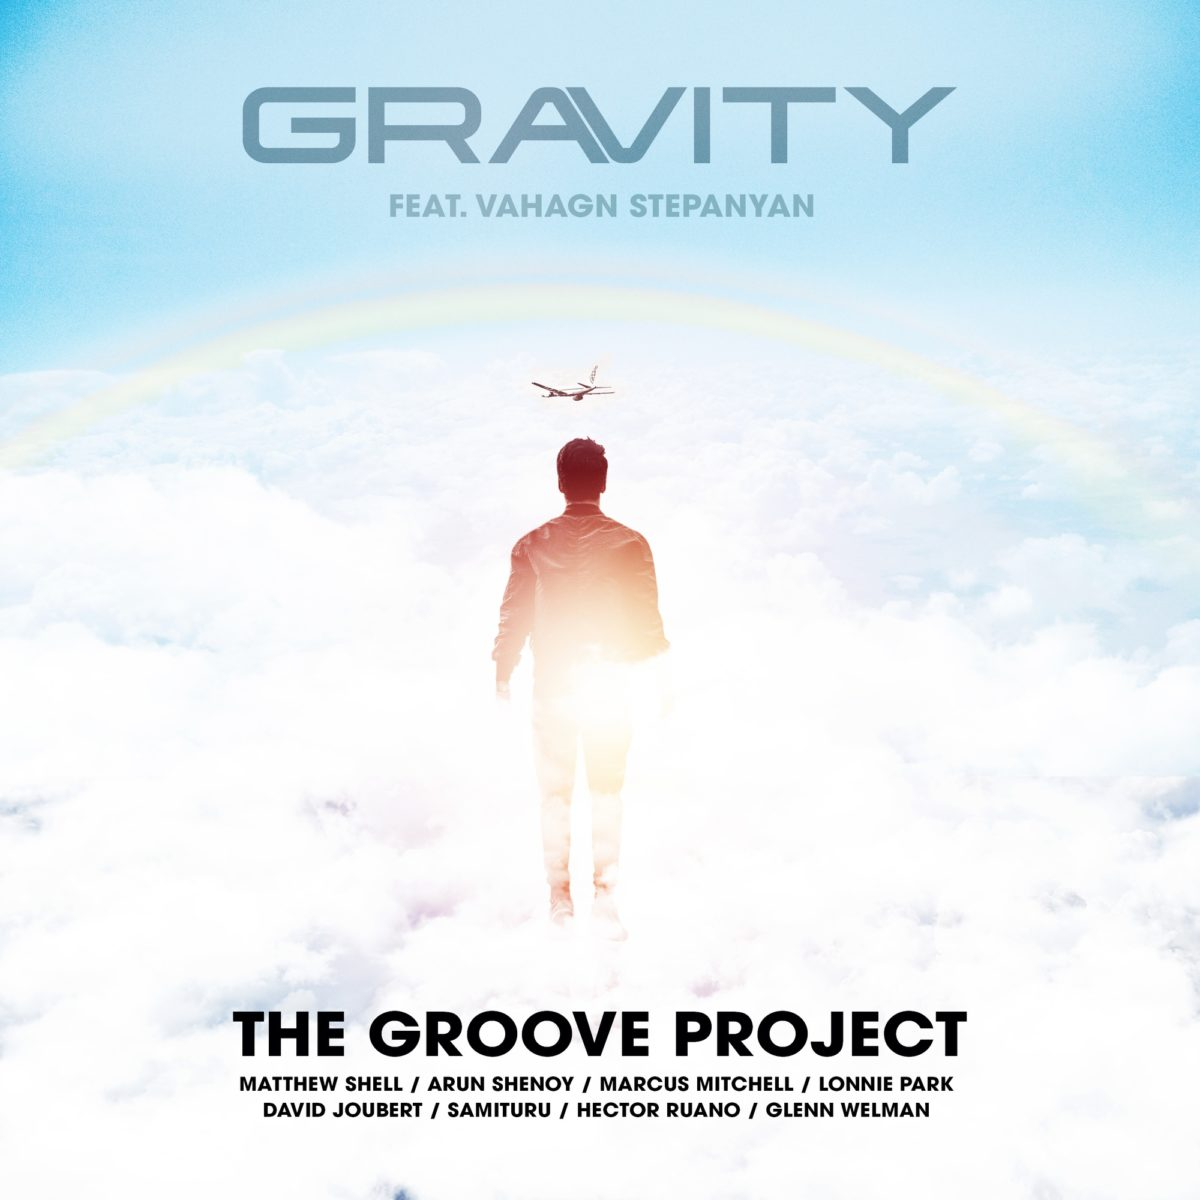 The Groove Project - Gravity Cover Art 2000px